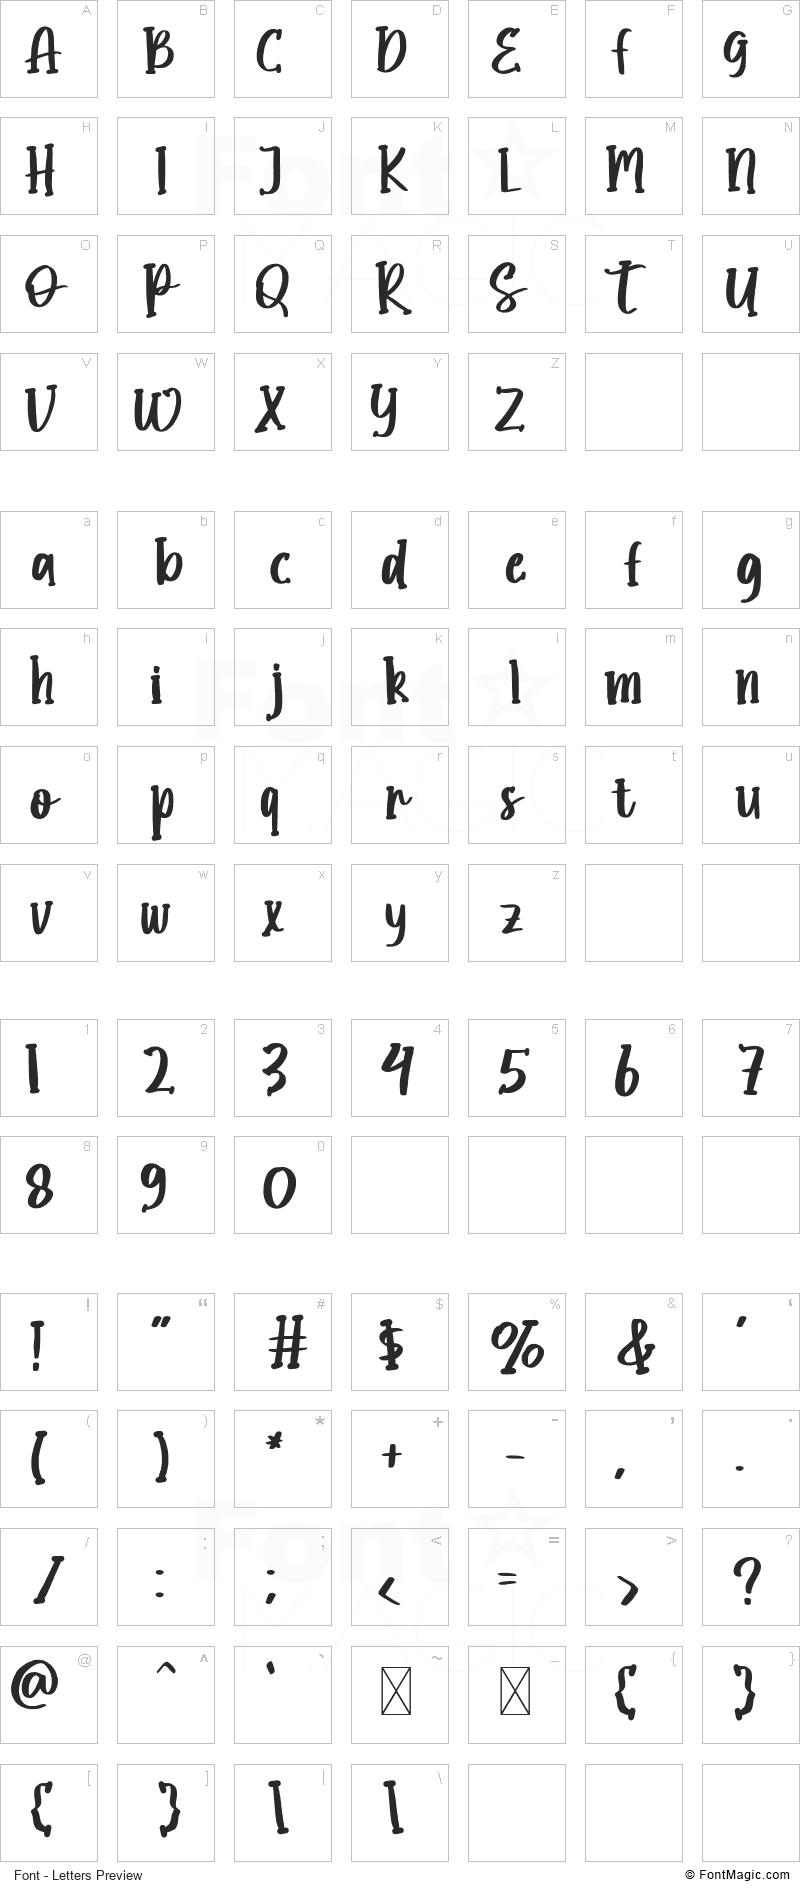 Ghostly Font - All Latters Preview Chart